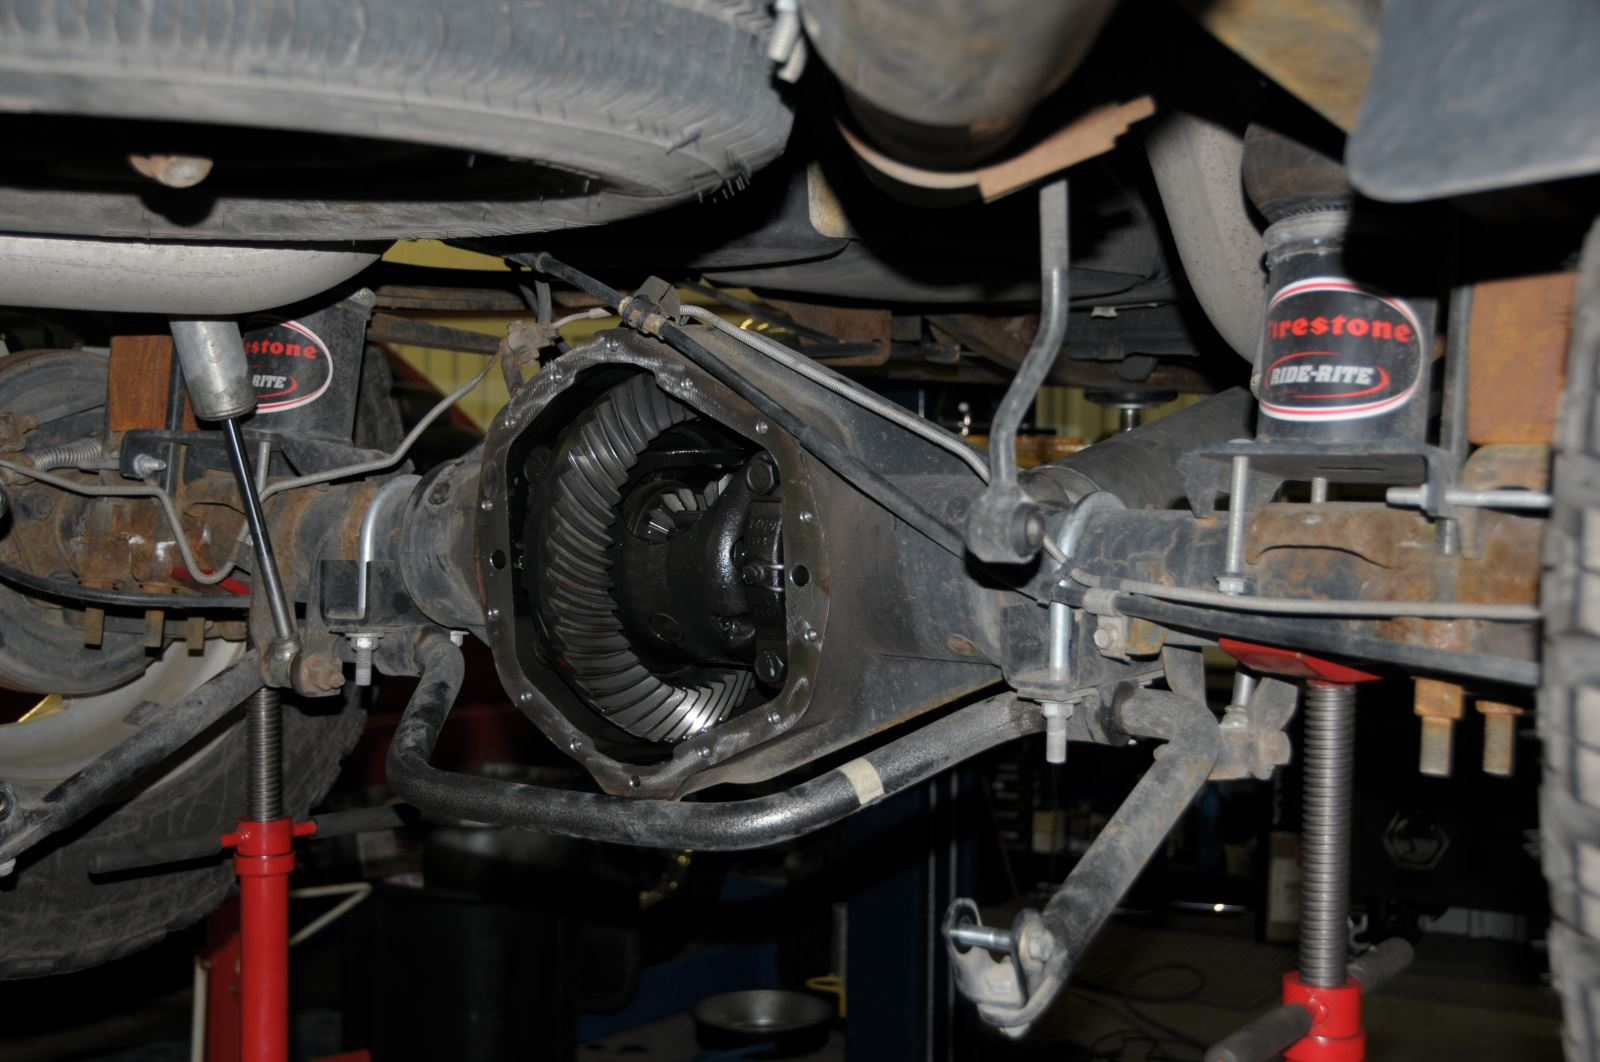 Axles Gears And A Whole Lot More Tech Corner With Levi Diesel Universals Rear Axle Available Part Diagrams 10 In Suspension The Program Has Had 100 Percent Placement Last Three Years Provides Future Mechanics Engineers Bright